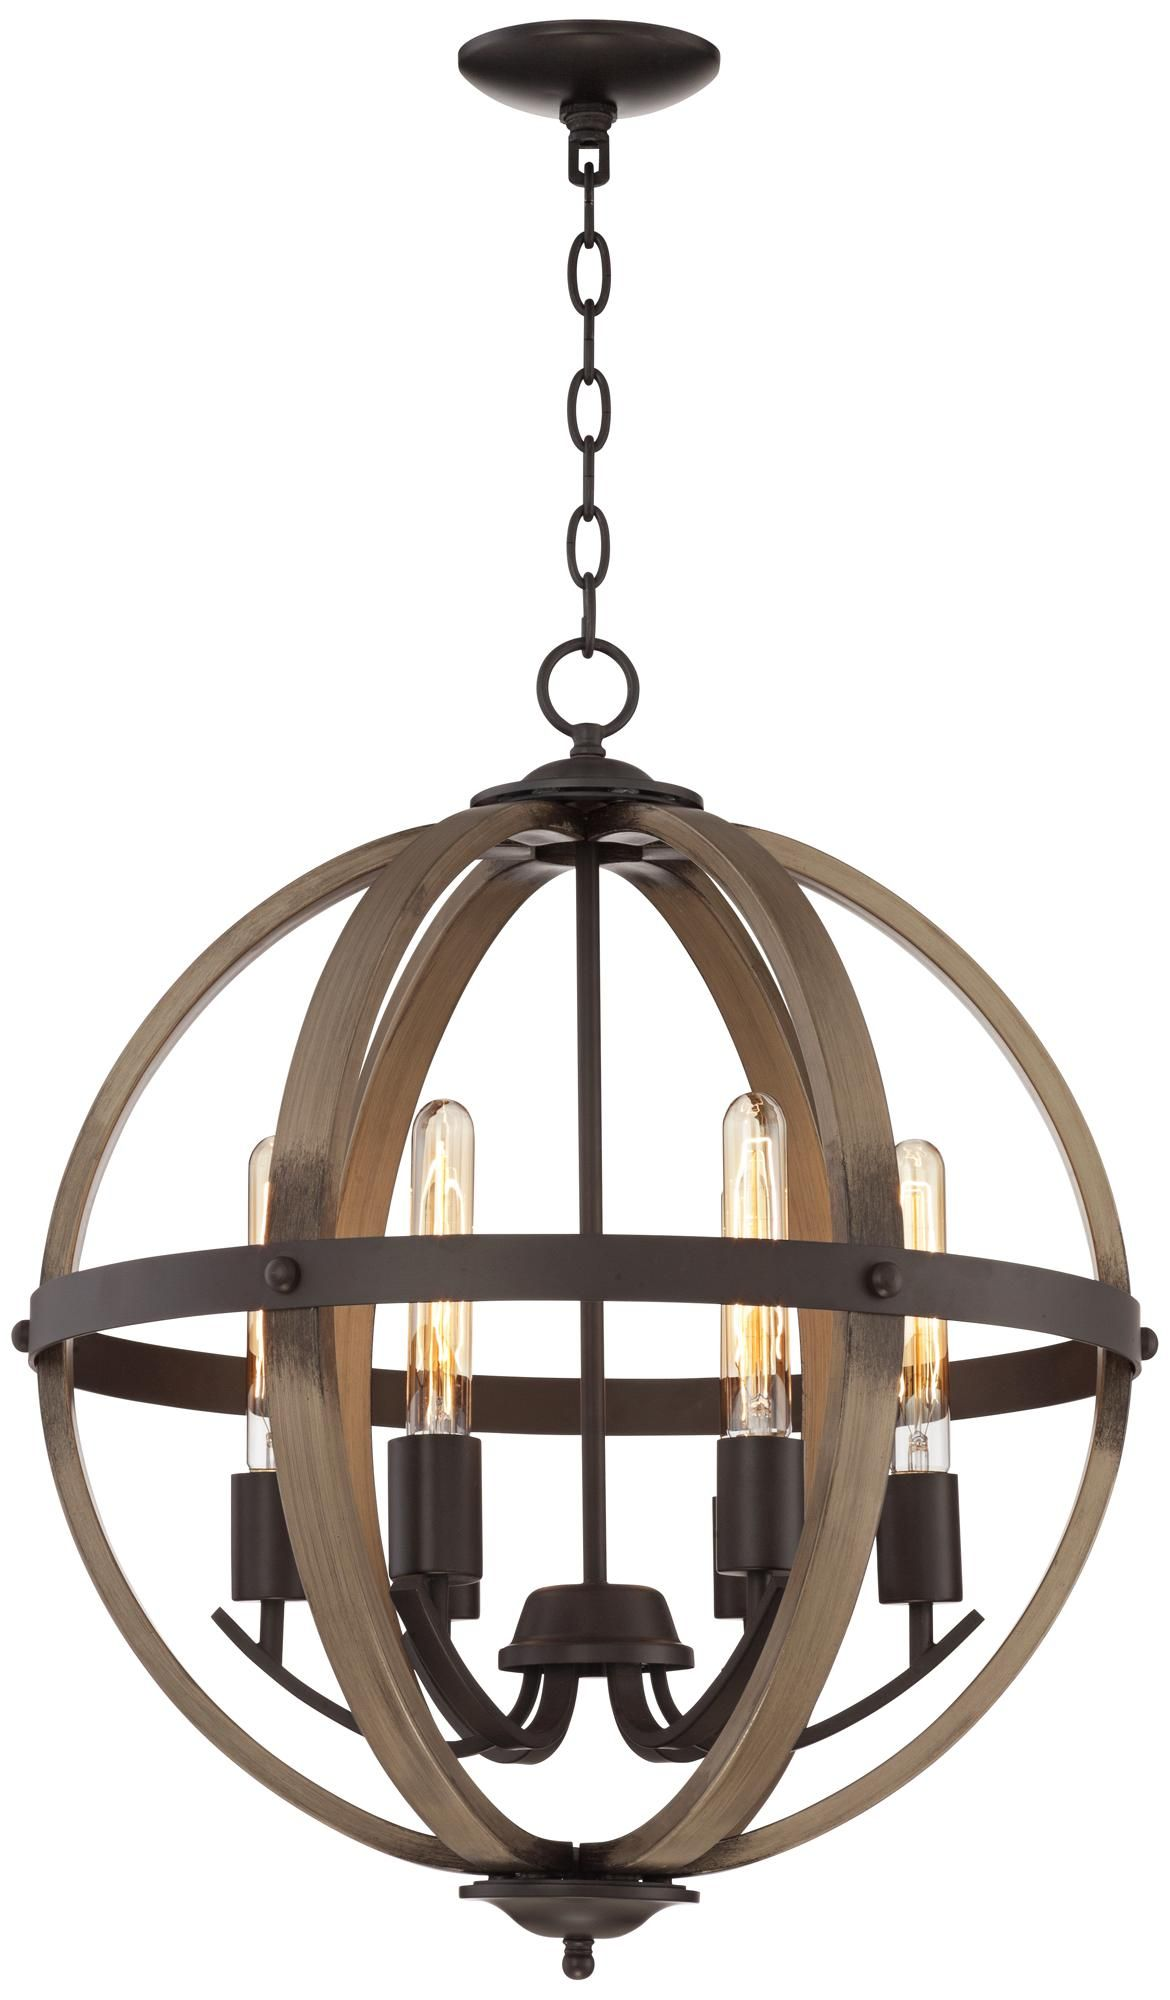 "Kimpton 6 Light 21"" Wide Dark Bronze Orb Chandelier"